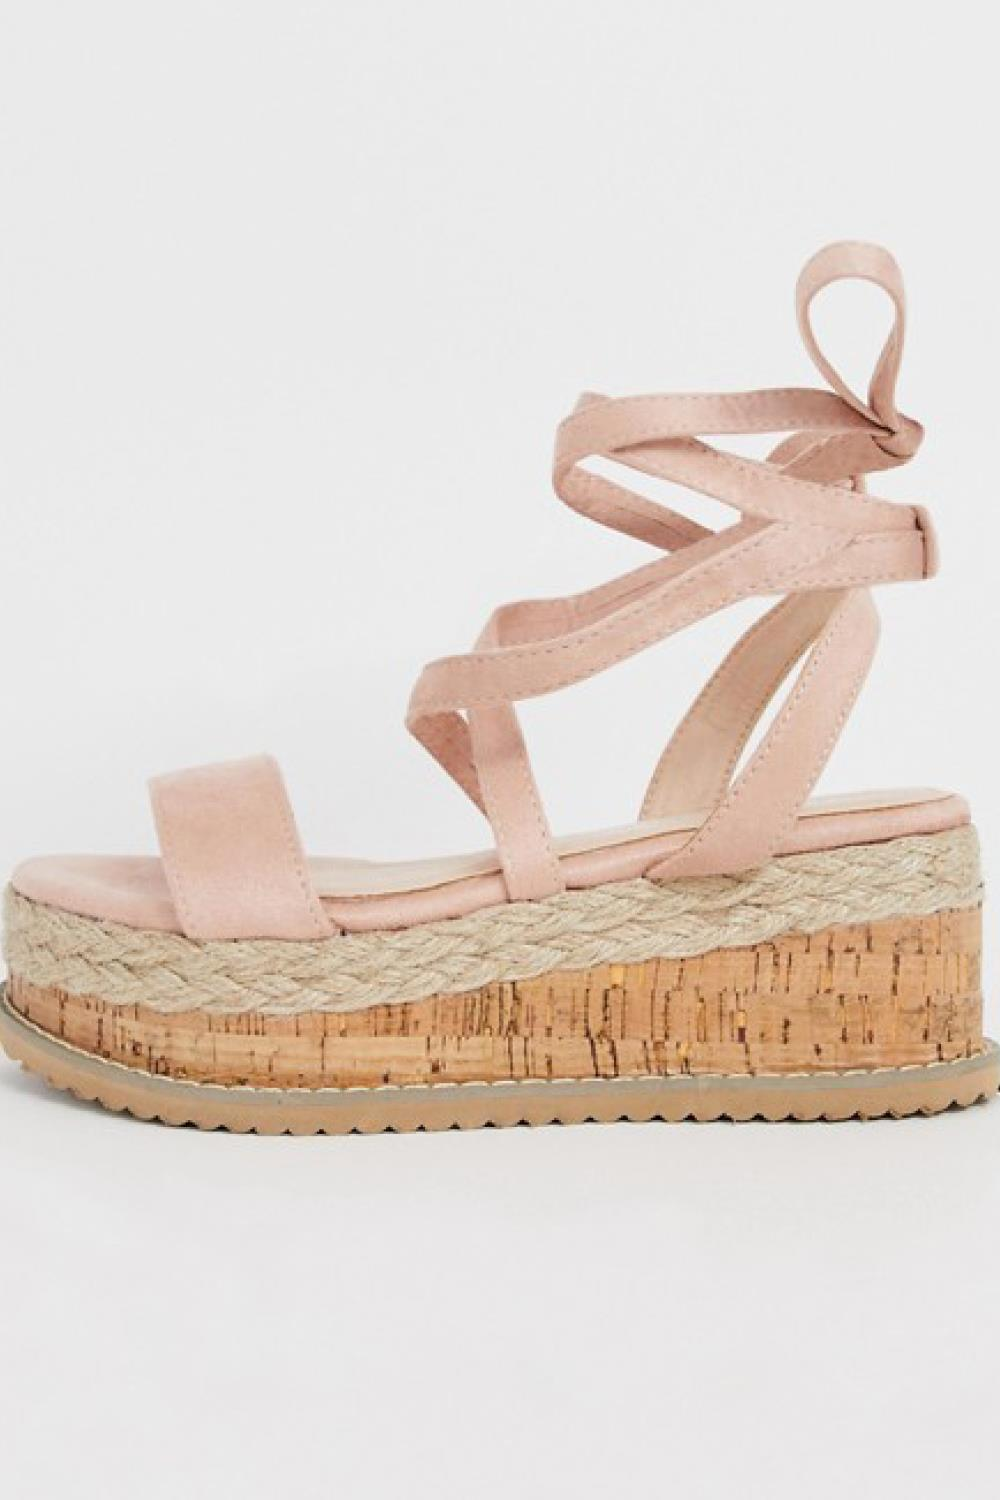 sandalias con plataforma pretty little thing 29,99€